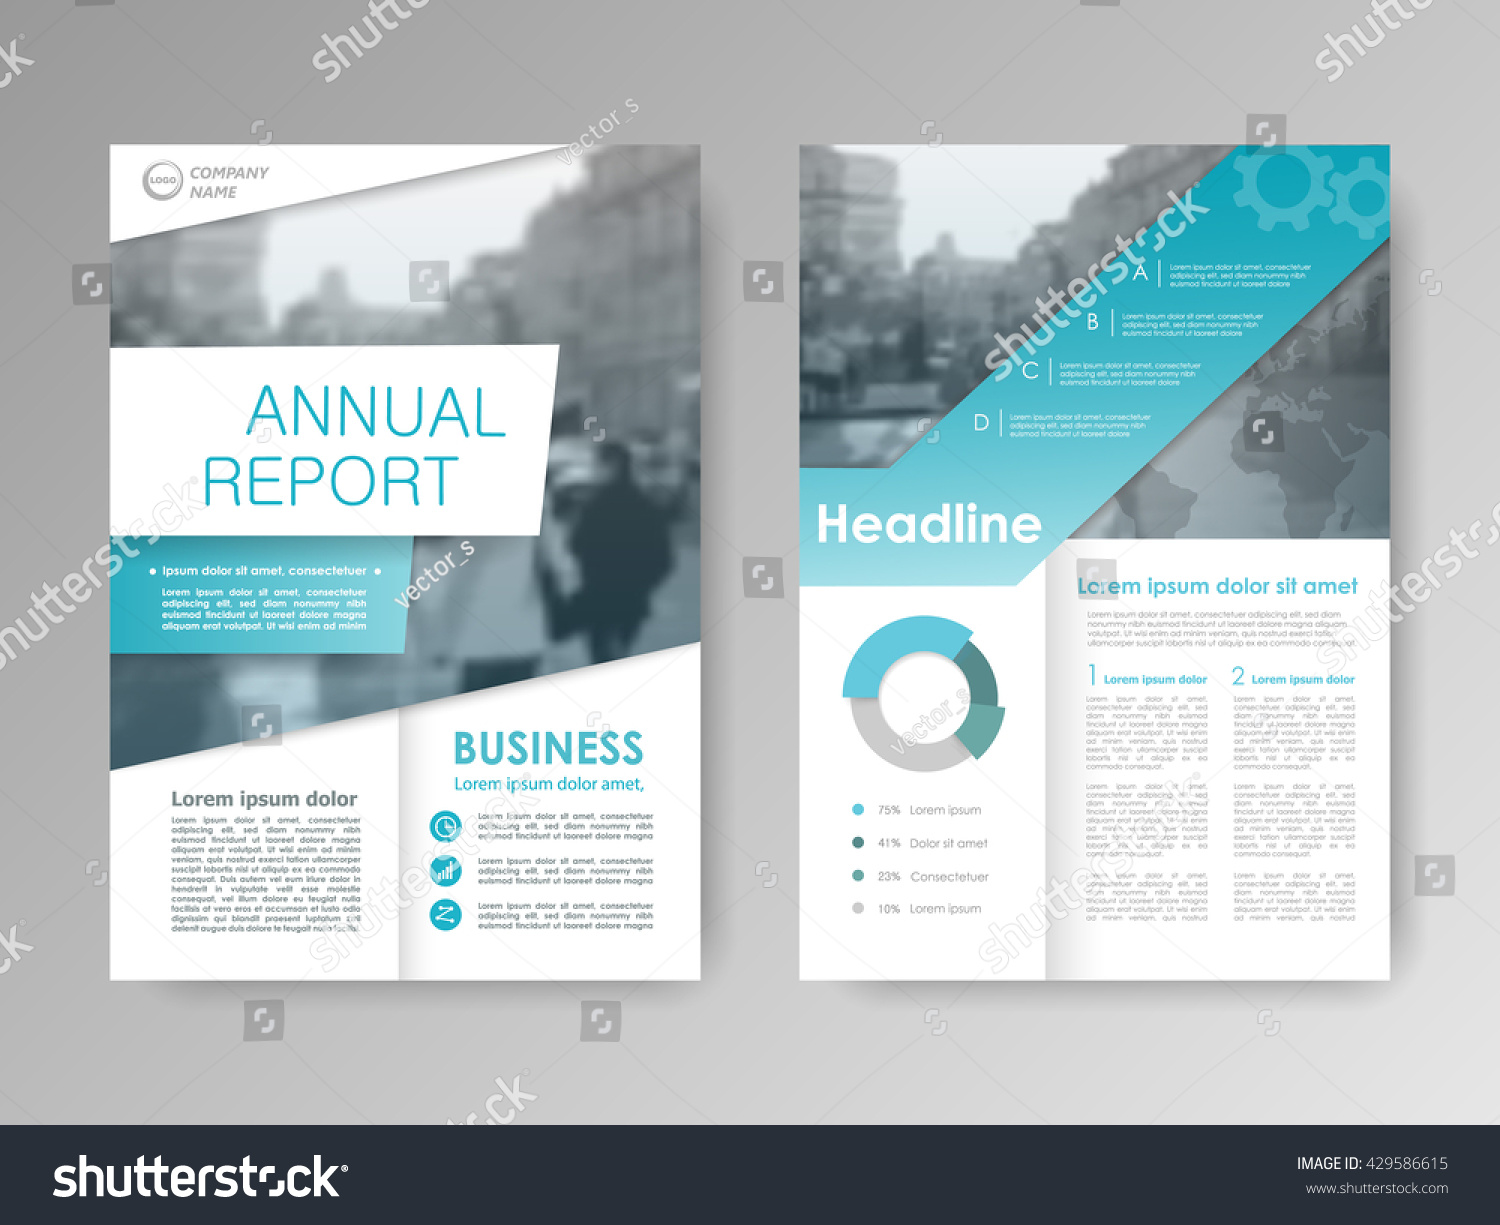 royalty annual report flyer presentation stock front page report book cover layout design design layout template in a4 size abstract business templates cover elements infographic stock vector